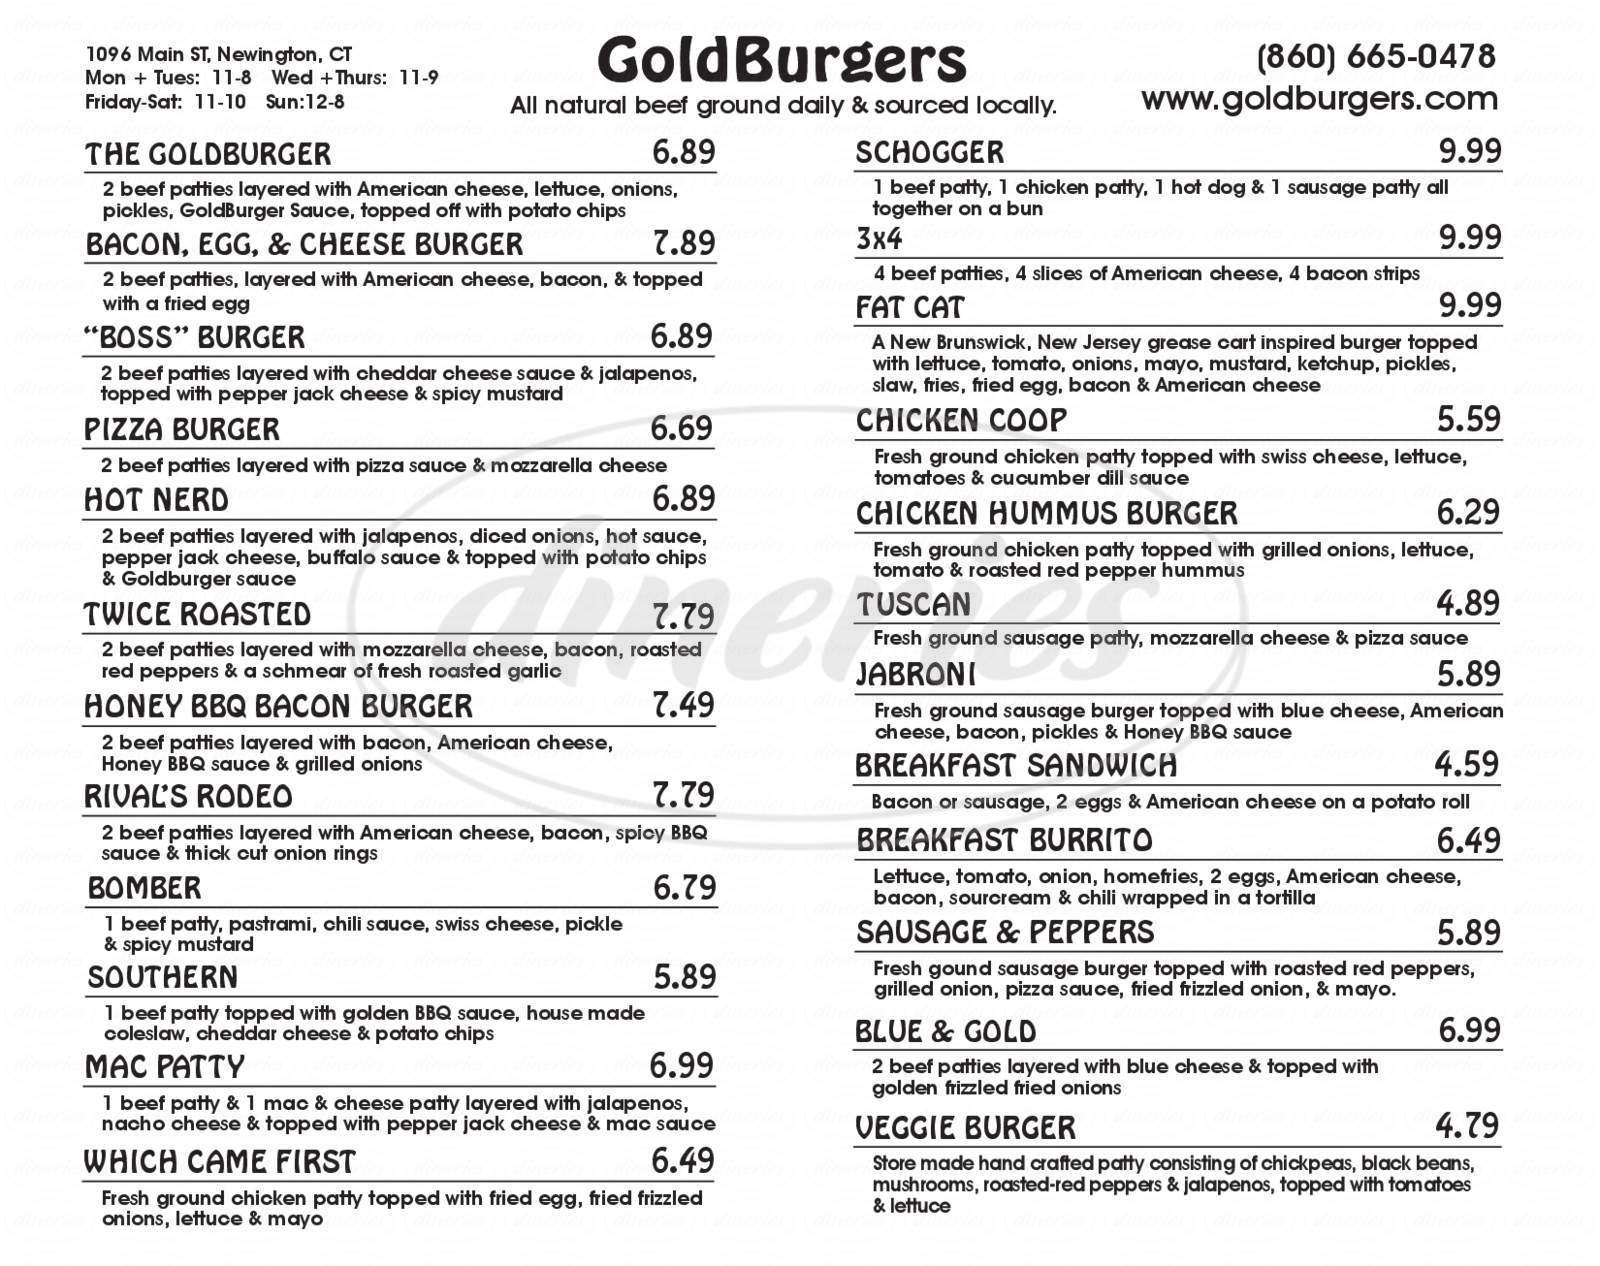 menu for GoldBurgers